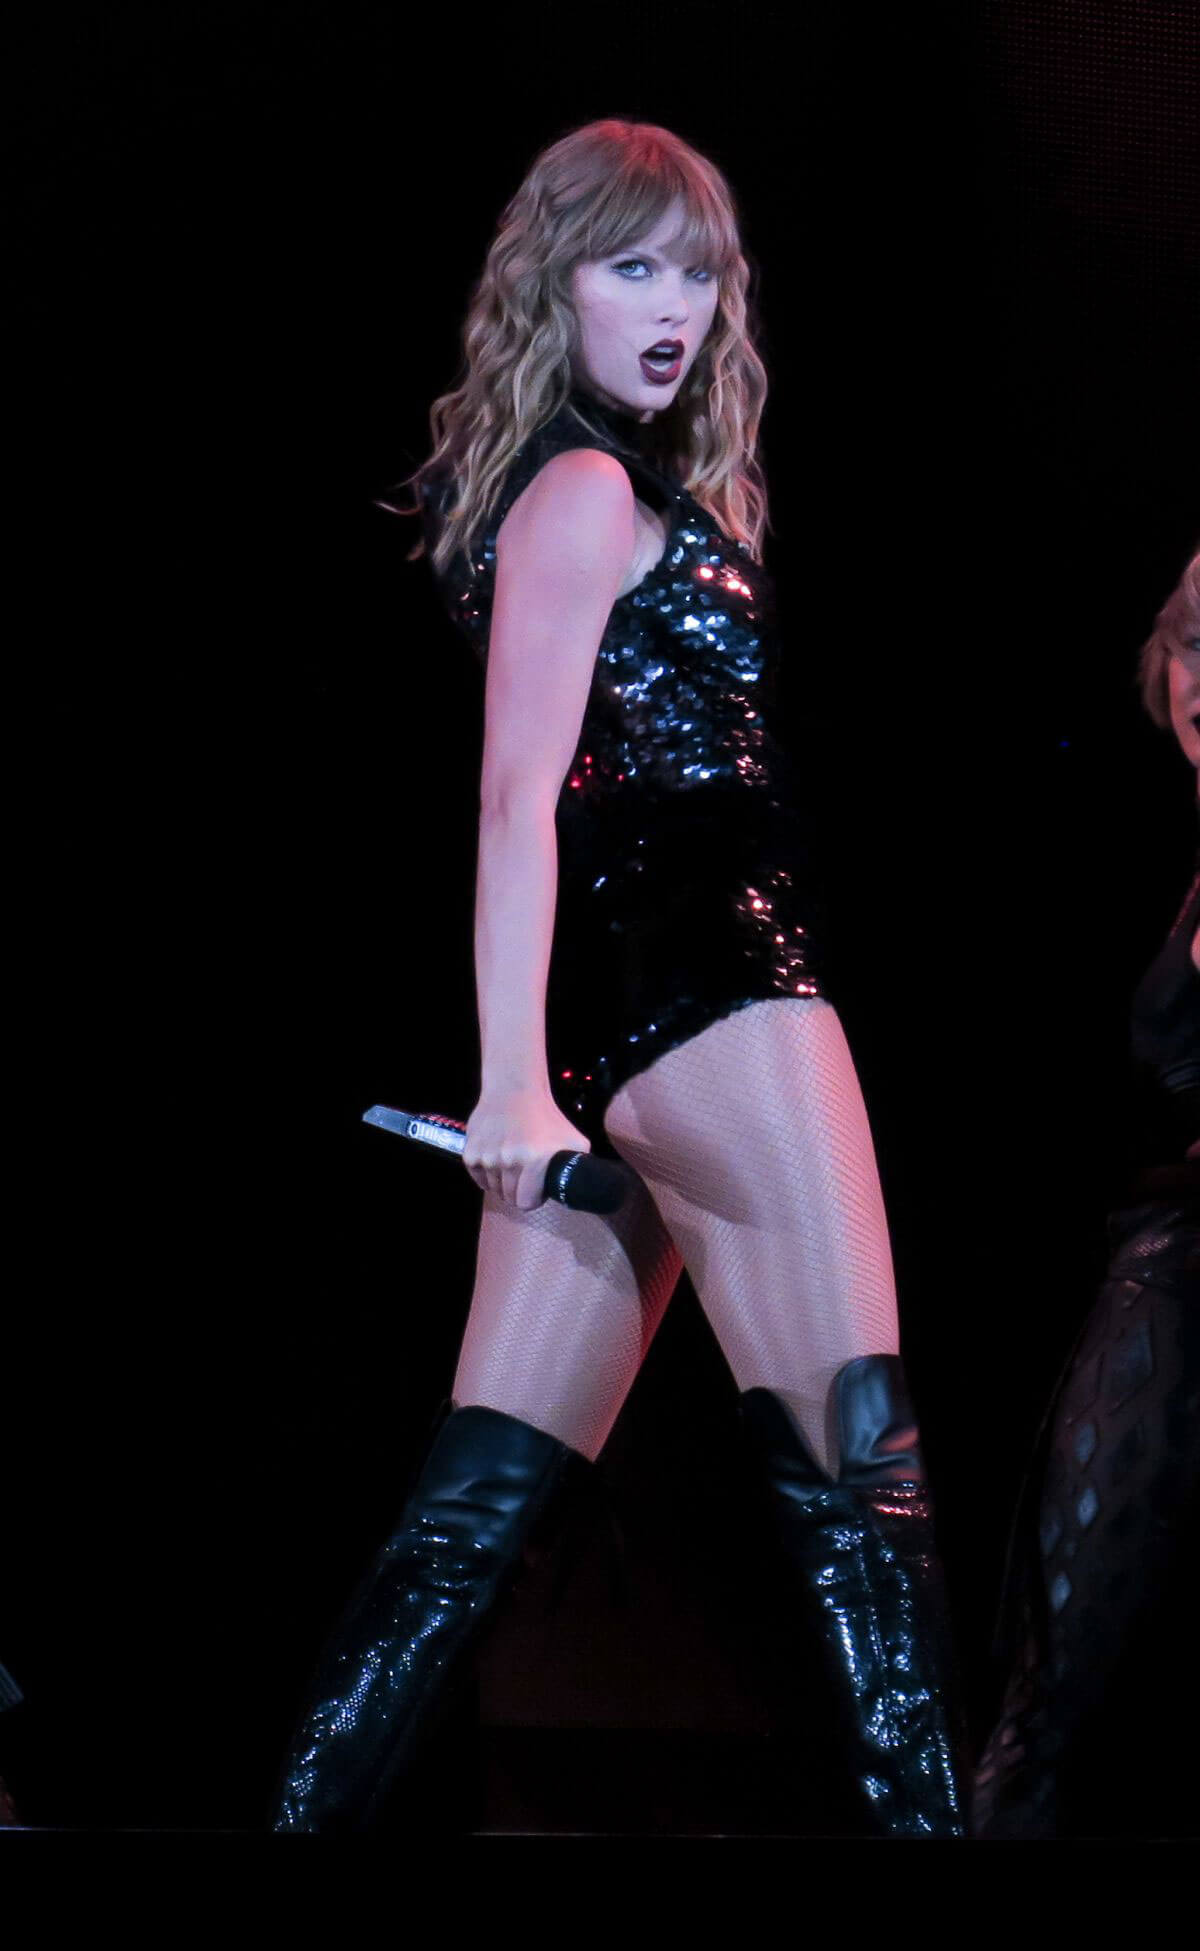 Taylor Swift Stills Performs at Reputation Tour in ... - photo#47